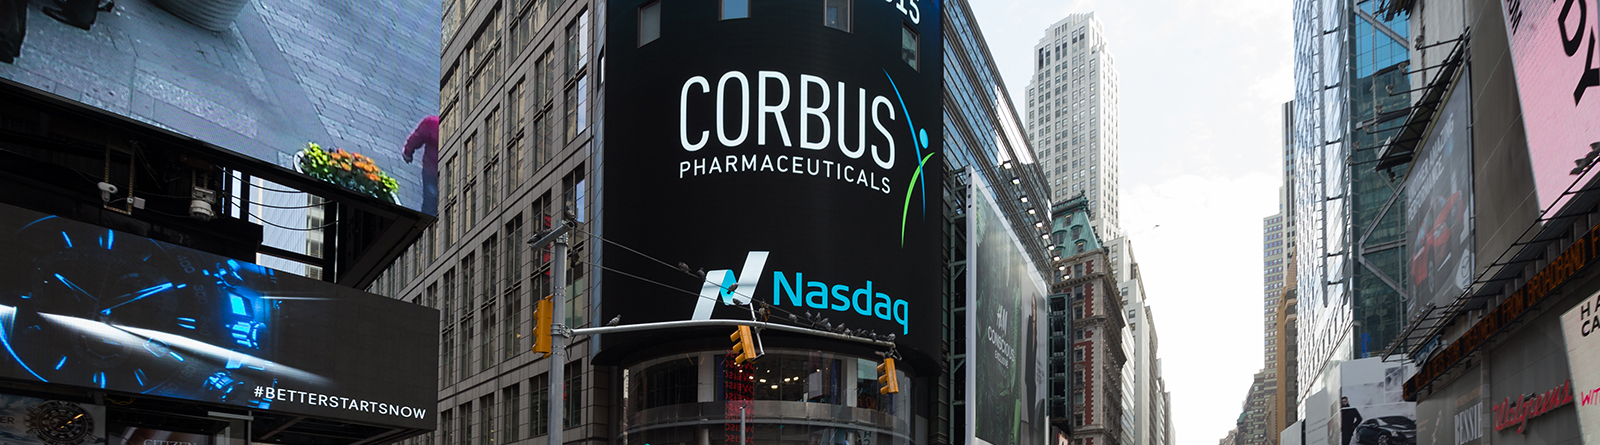 Corbus Pharmaceuticals Presents Additional Data from RESOLVE-1 Study in Systemic Sclerosis Banner